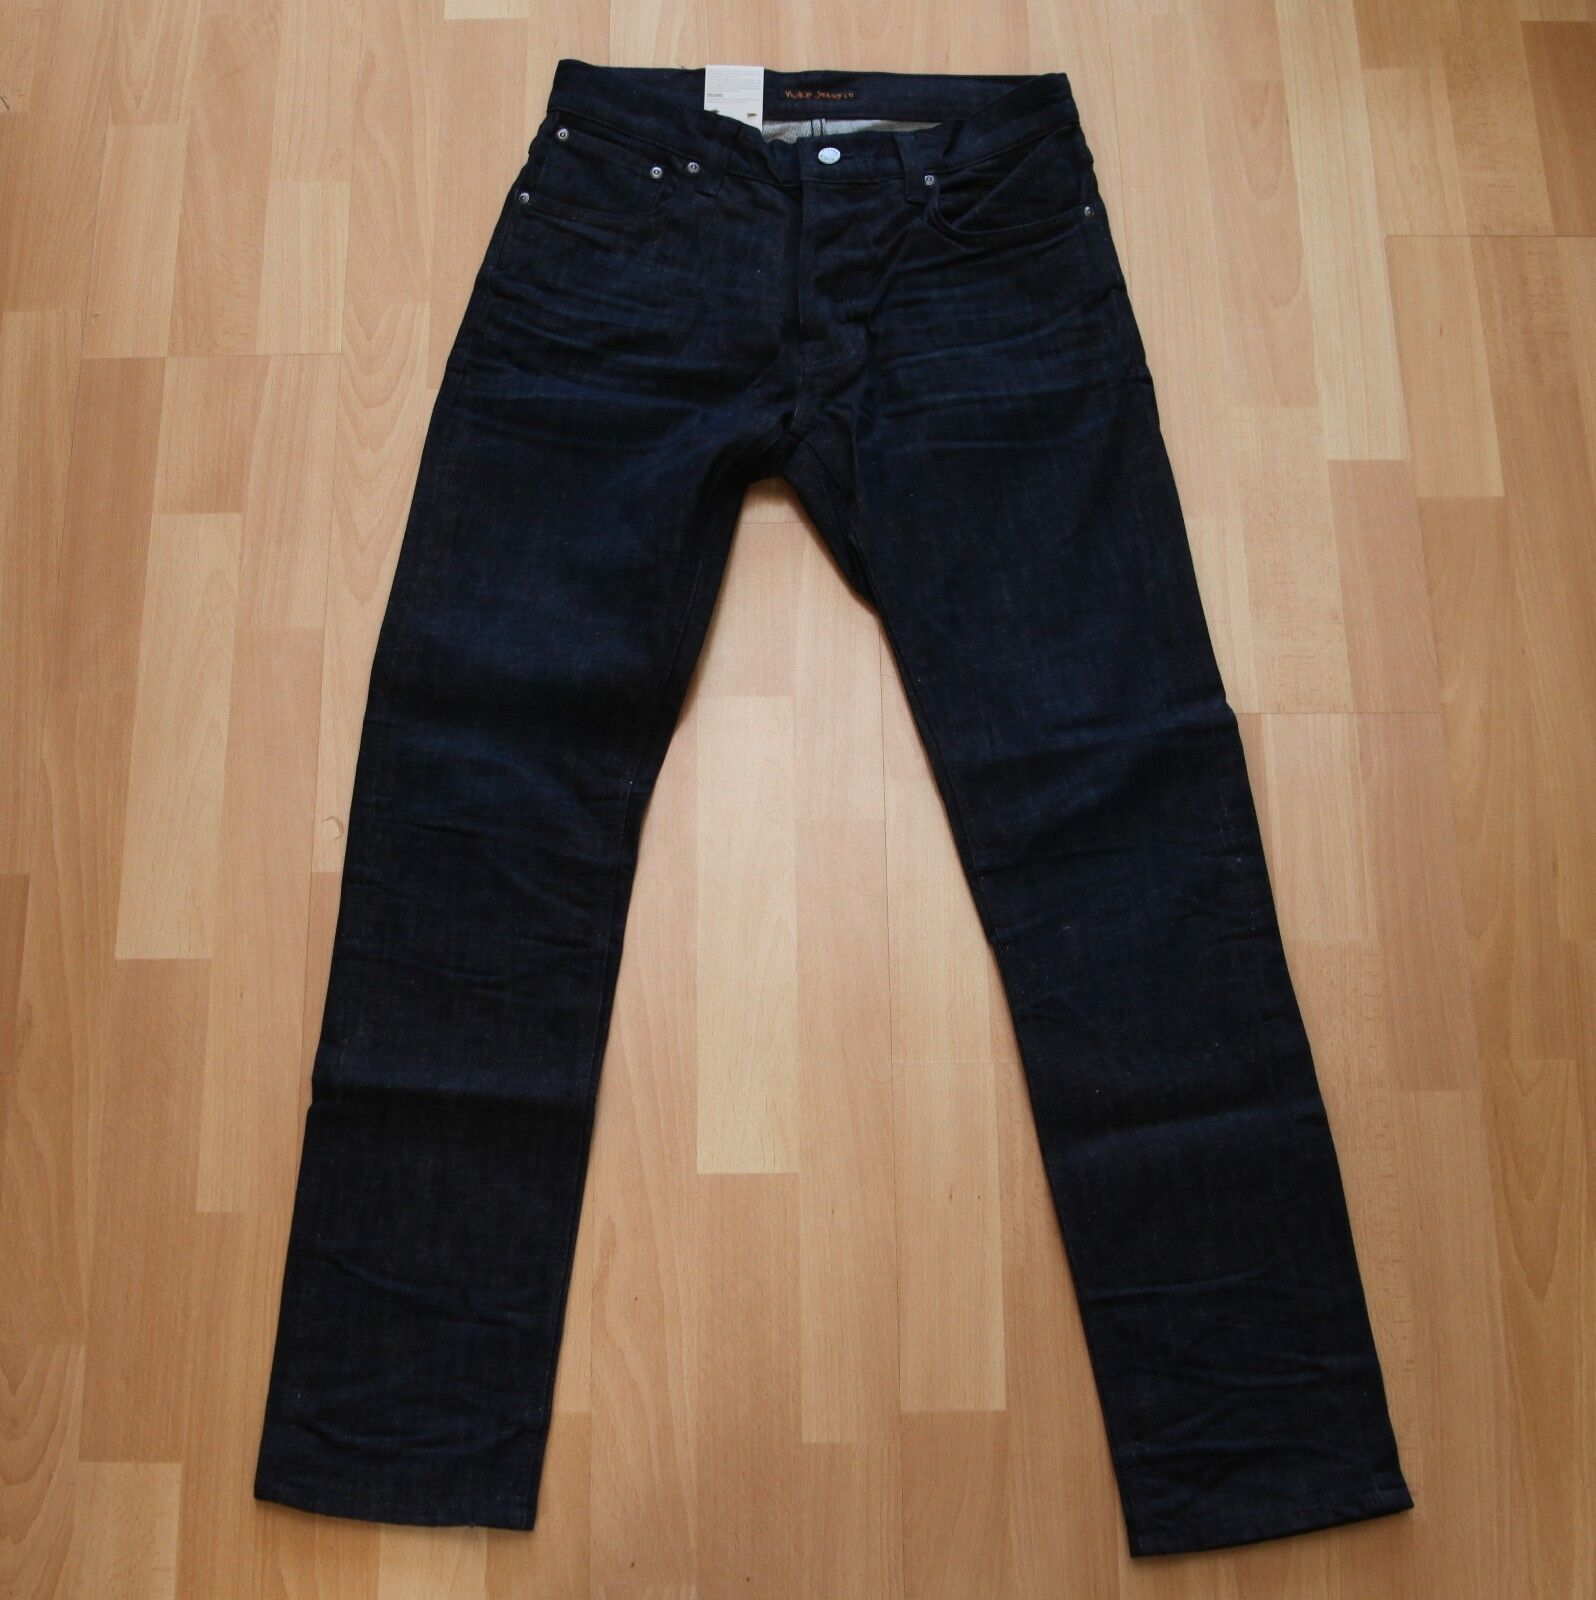 NUOVO Nudie Jeans tilted CANCELLO (tight fit) Dark Navy blus 32 32